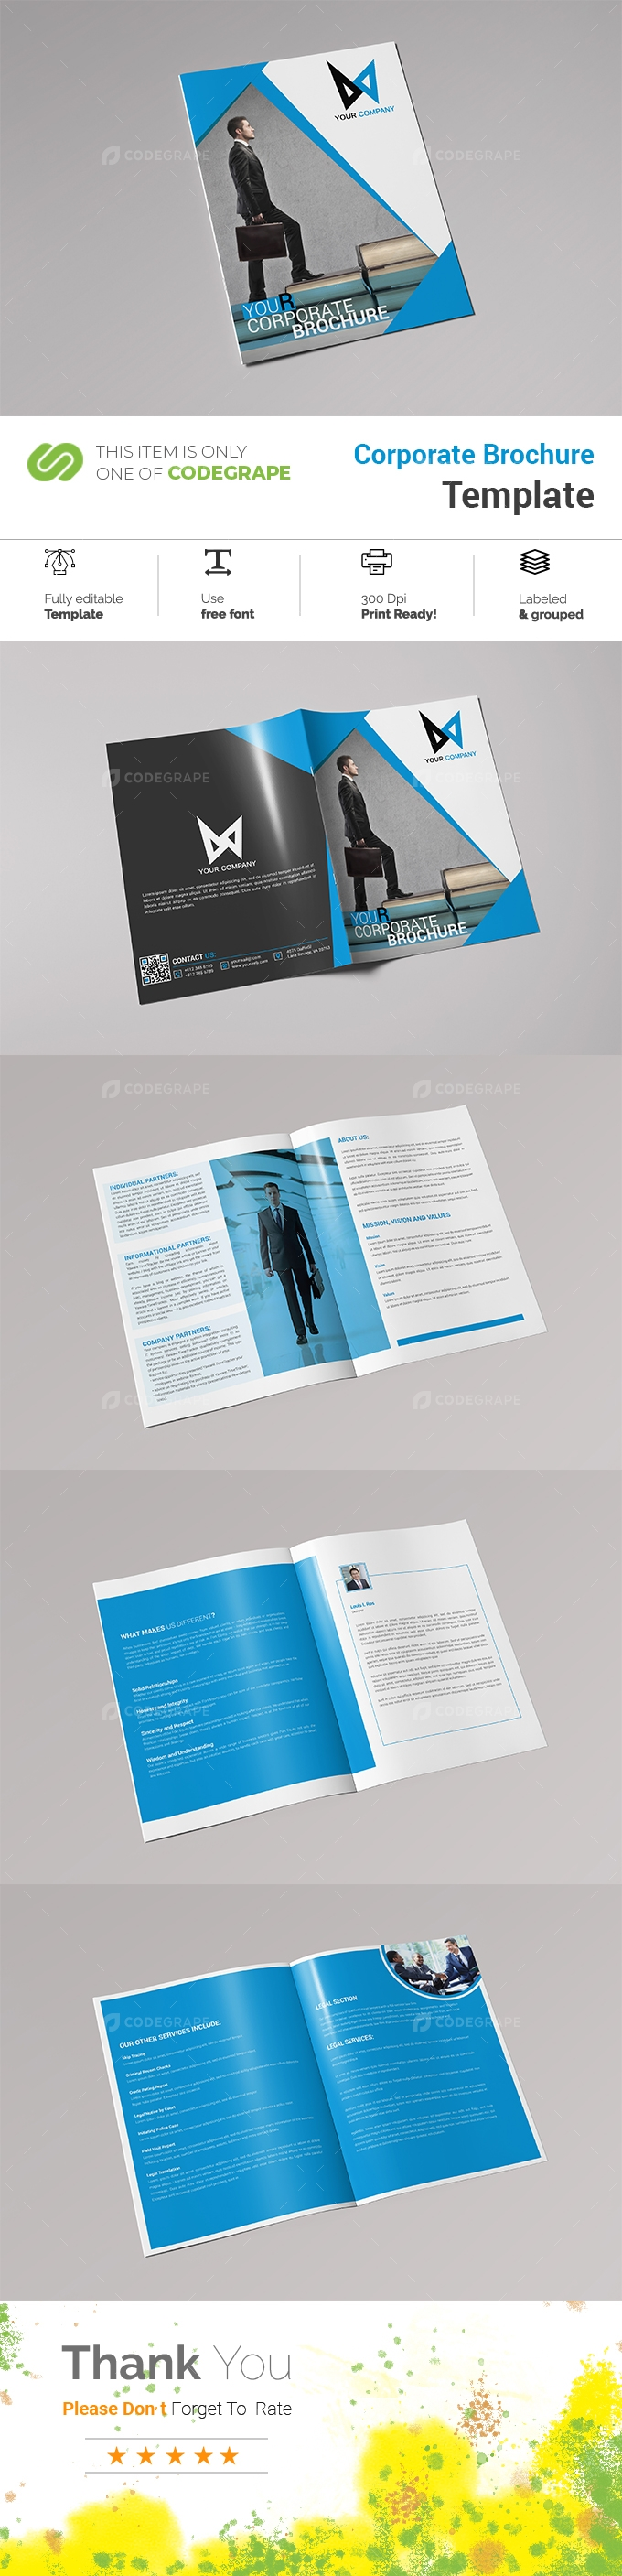 (8 Page) Corporate Brochure